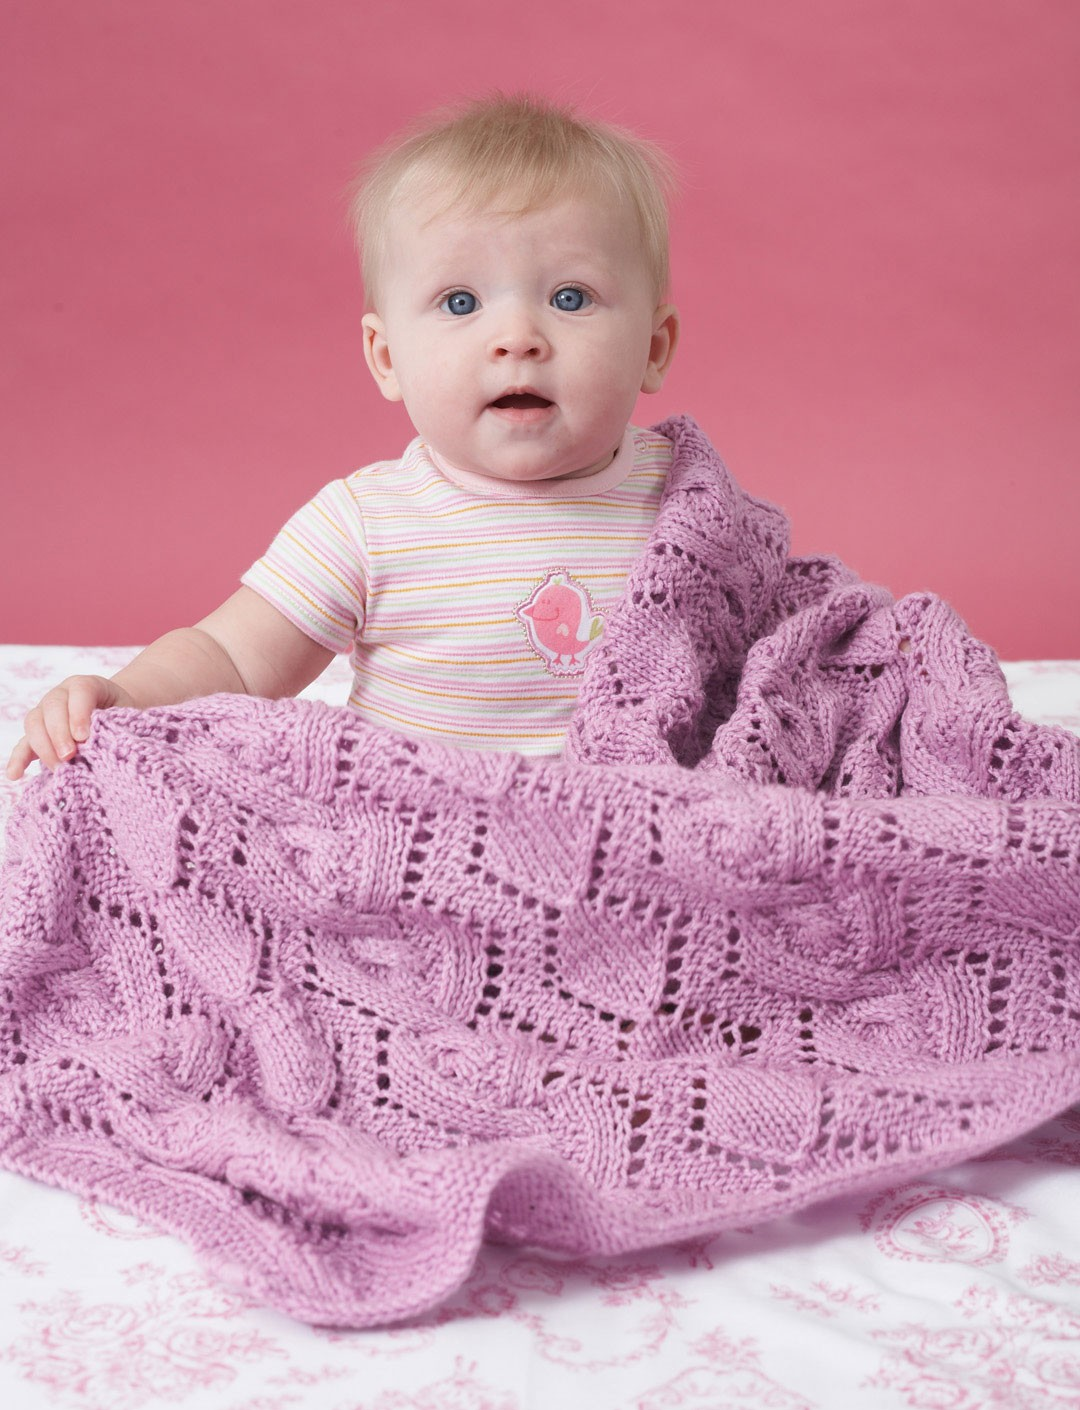 Bernat Knitting Patterns Free : Bernat Cable and Lace Blanket, Knit Pattern Yarnspirations